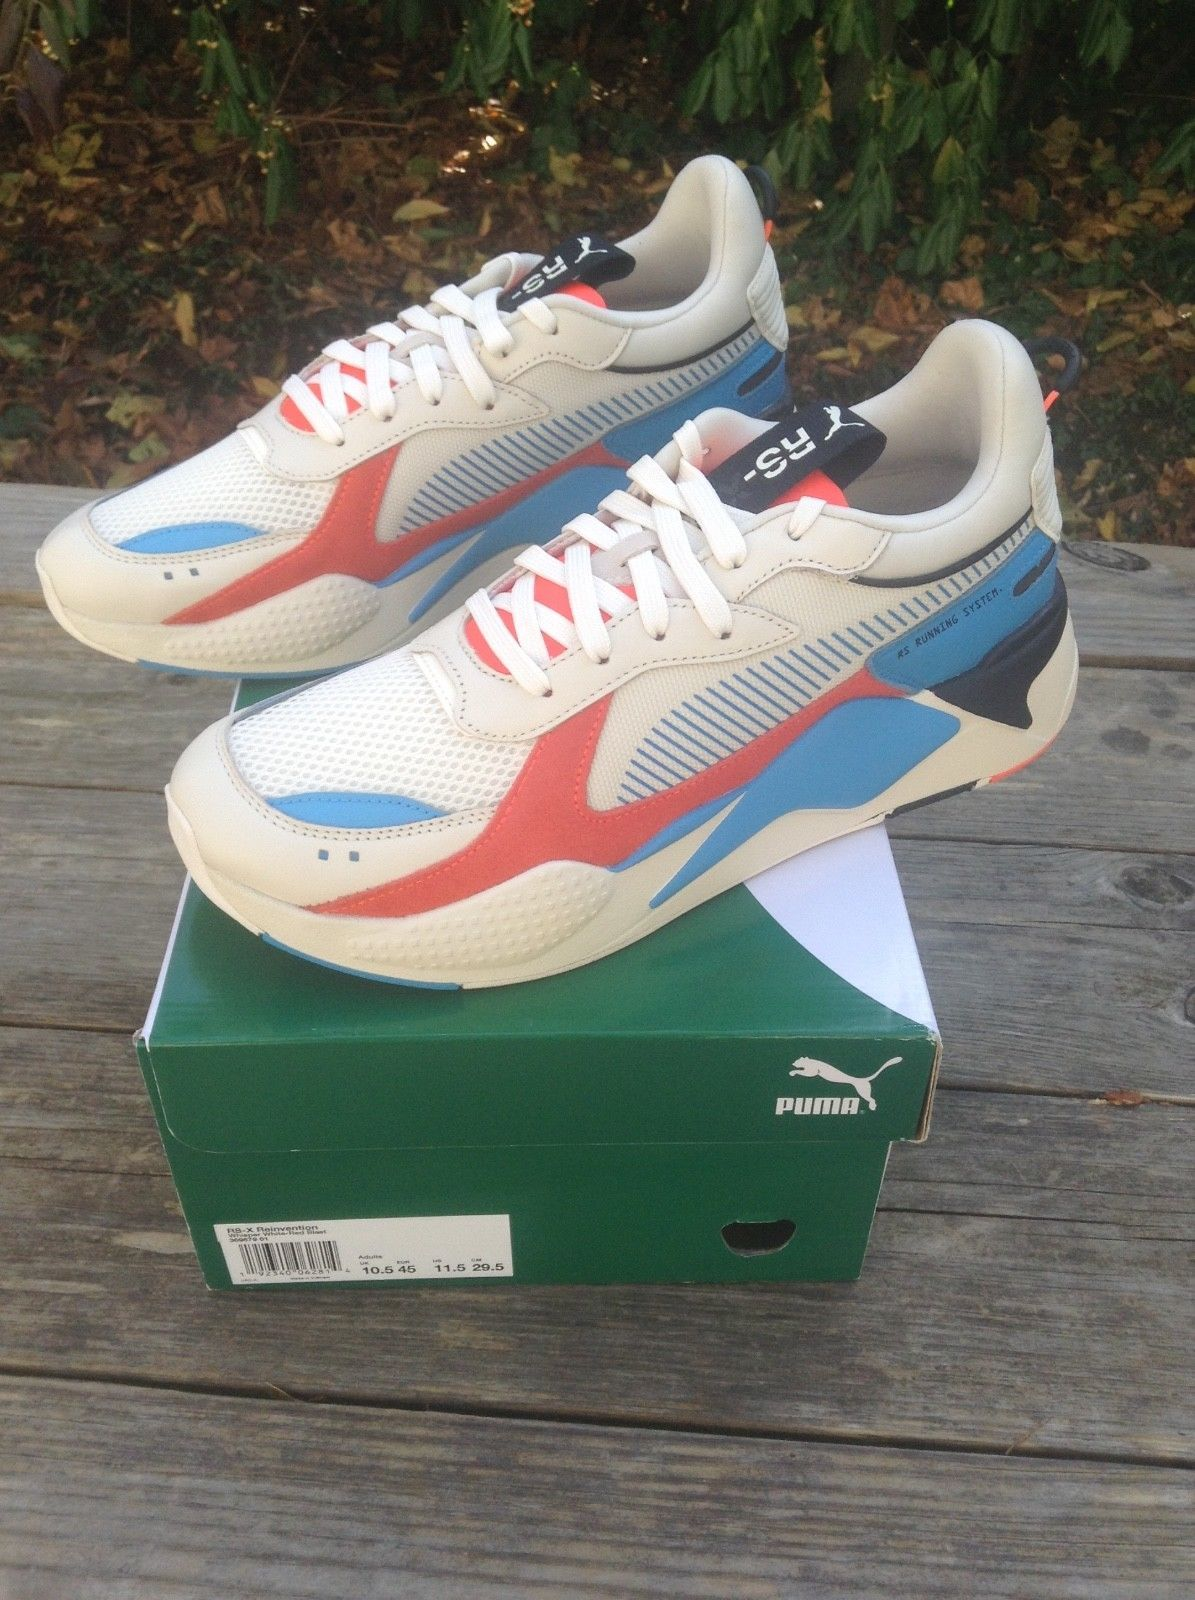 d70d6aceee9 Puma RS-X Reinvention Whisper White Red Blast Sz Men s US 11.5 ...